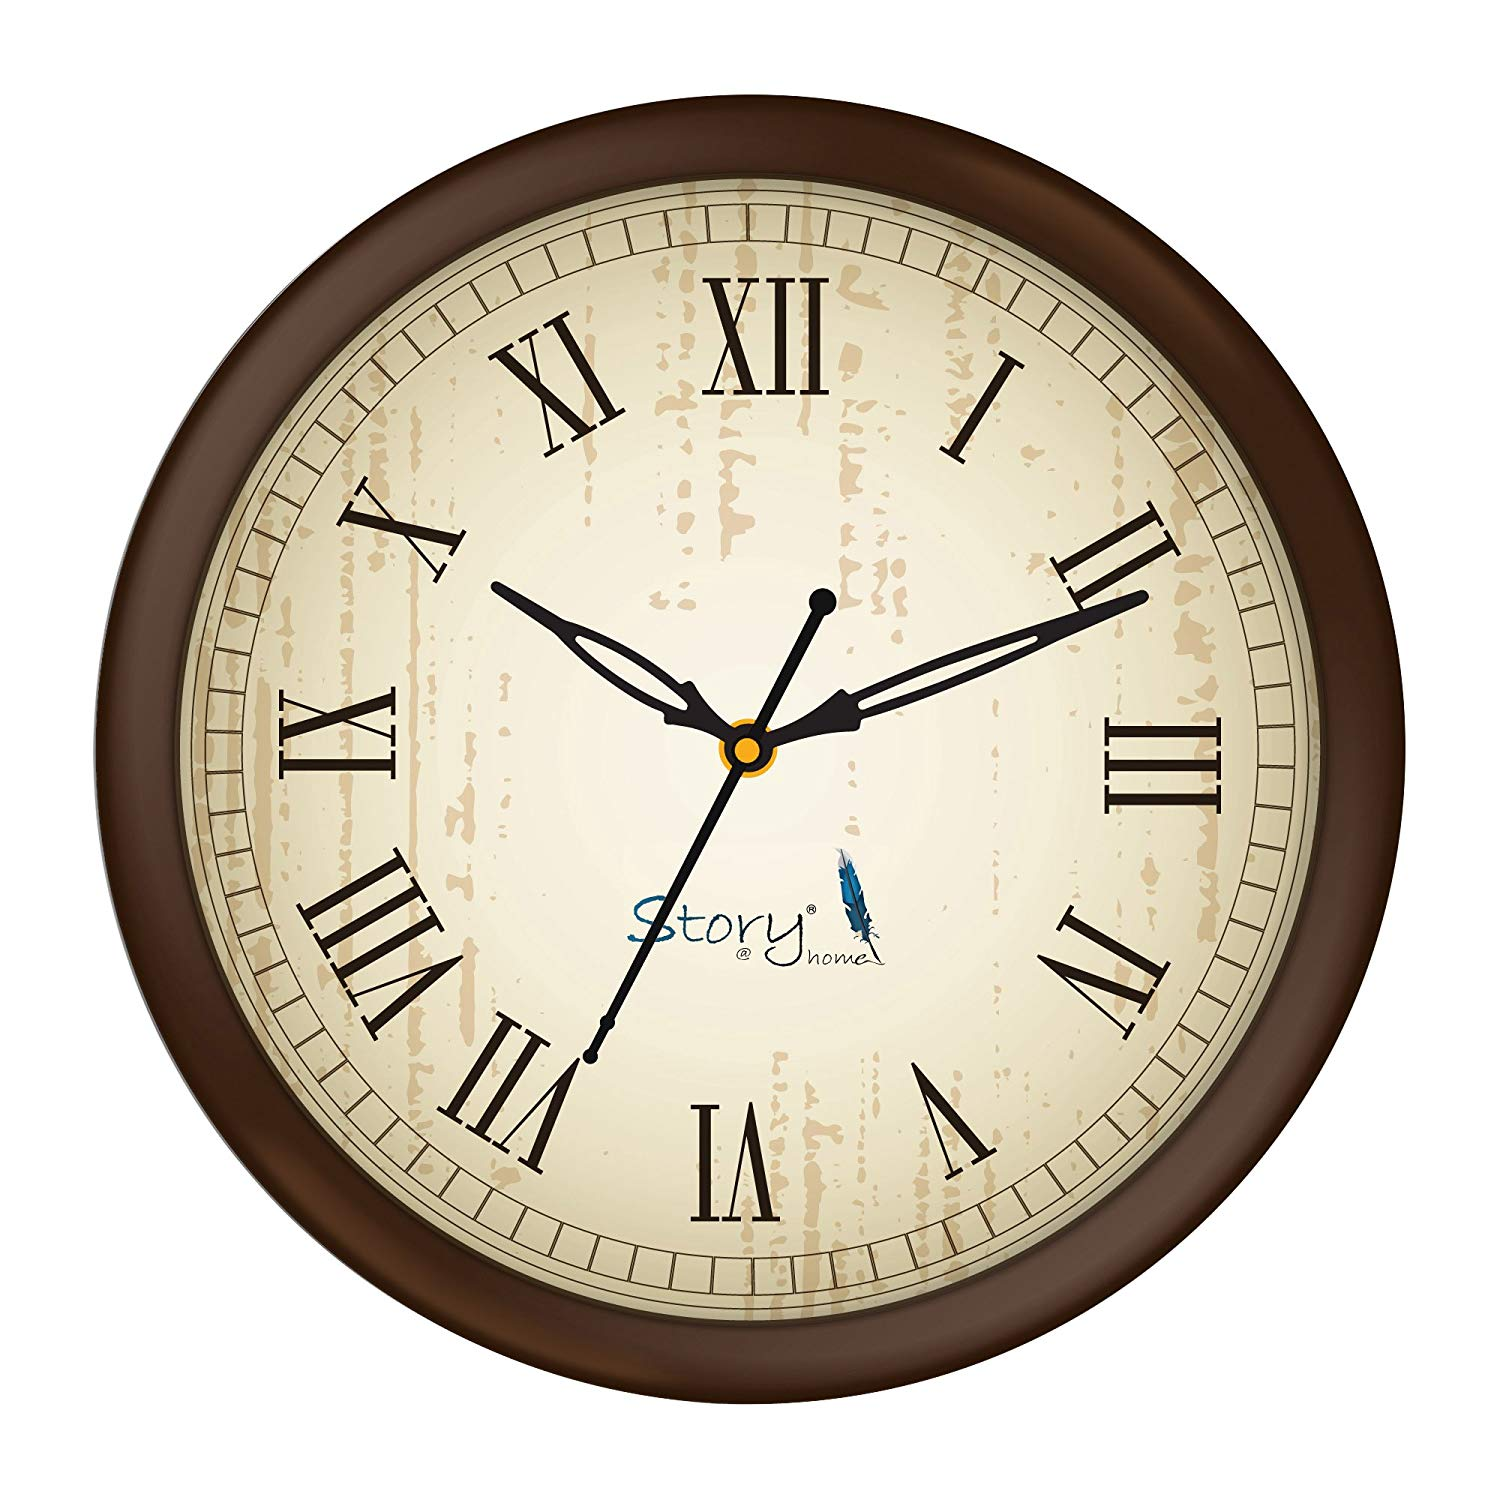 Story@Home 10-inch Round Shape Wall Clock